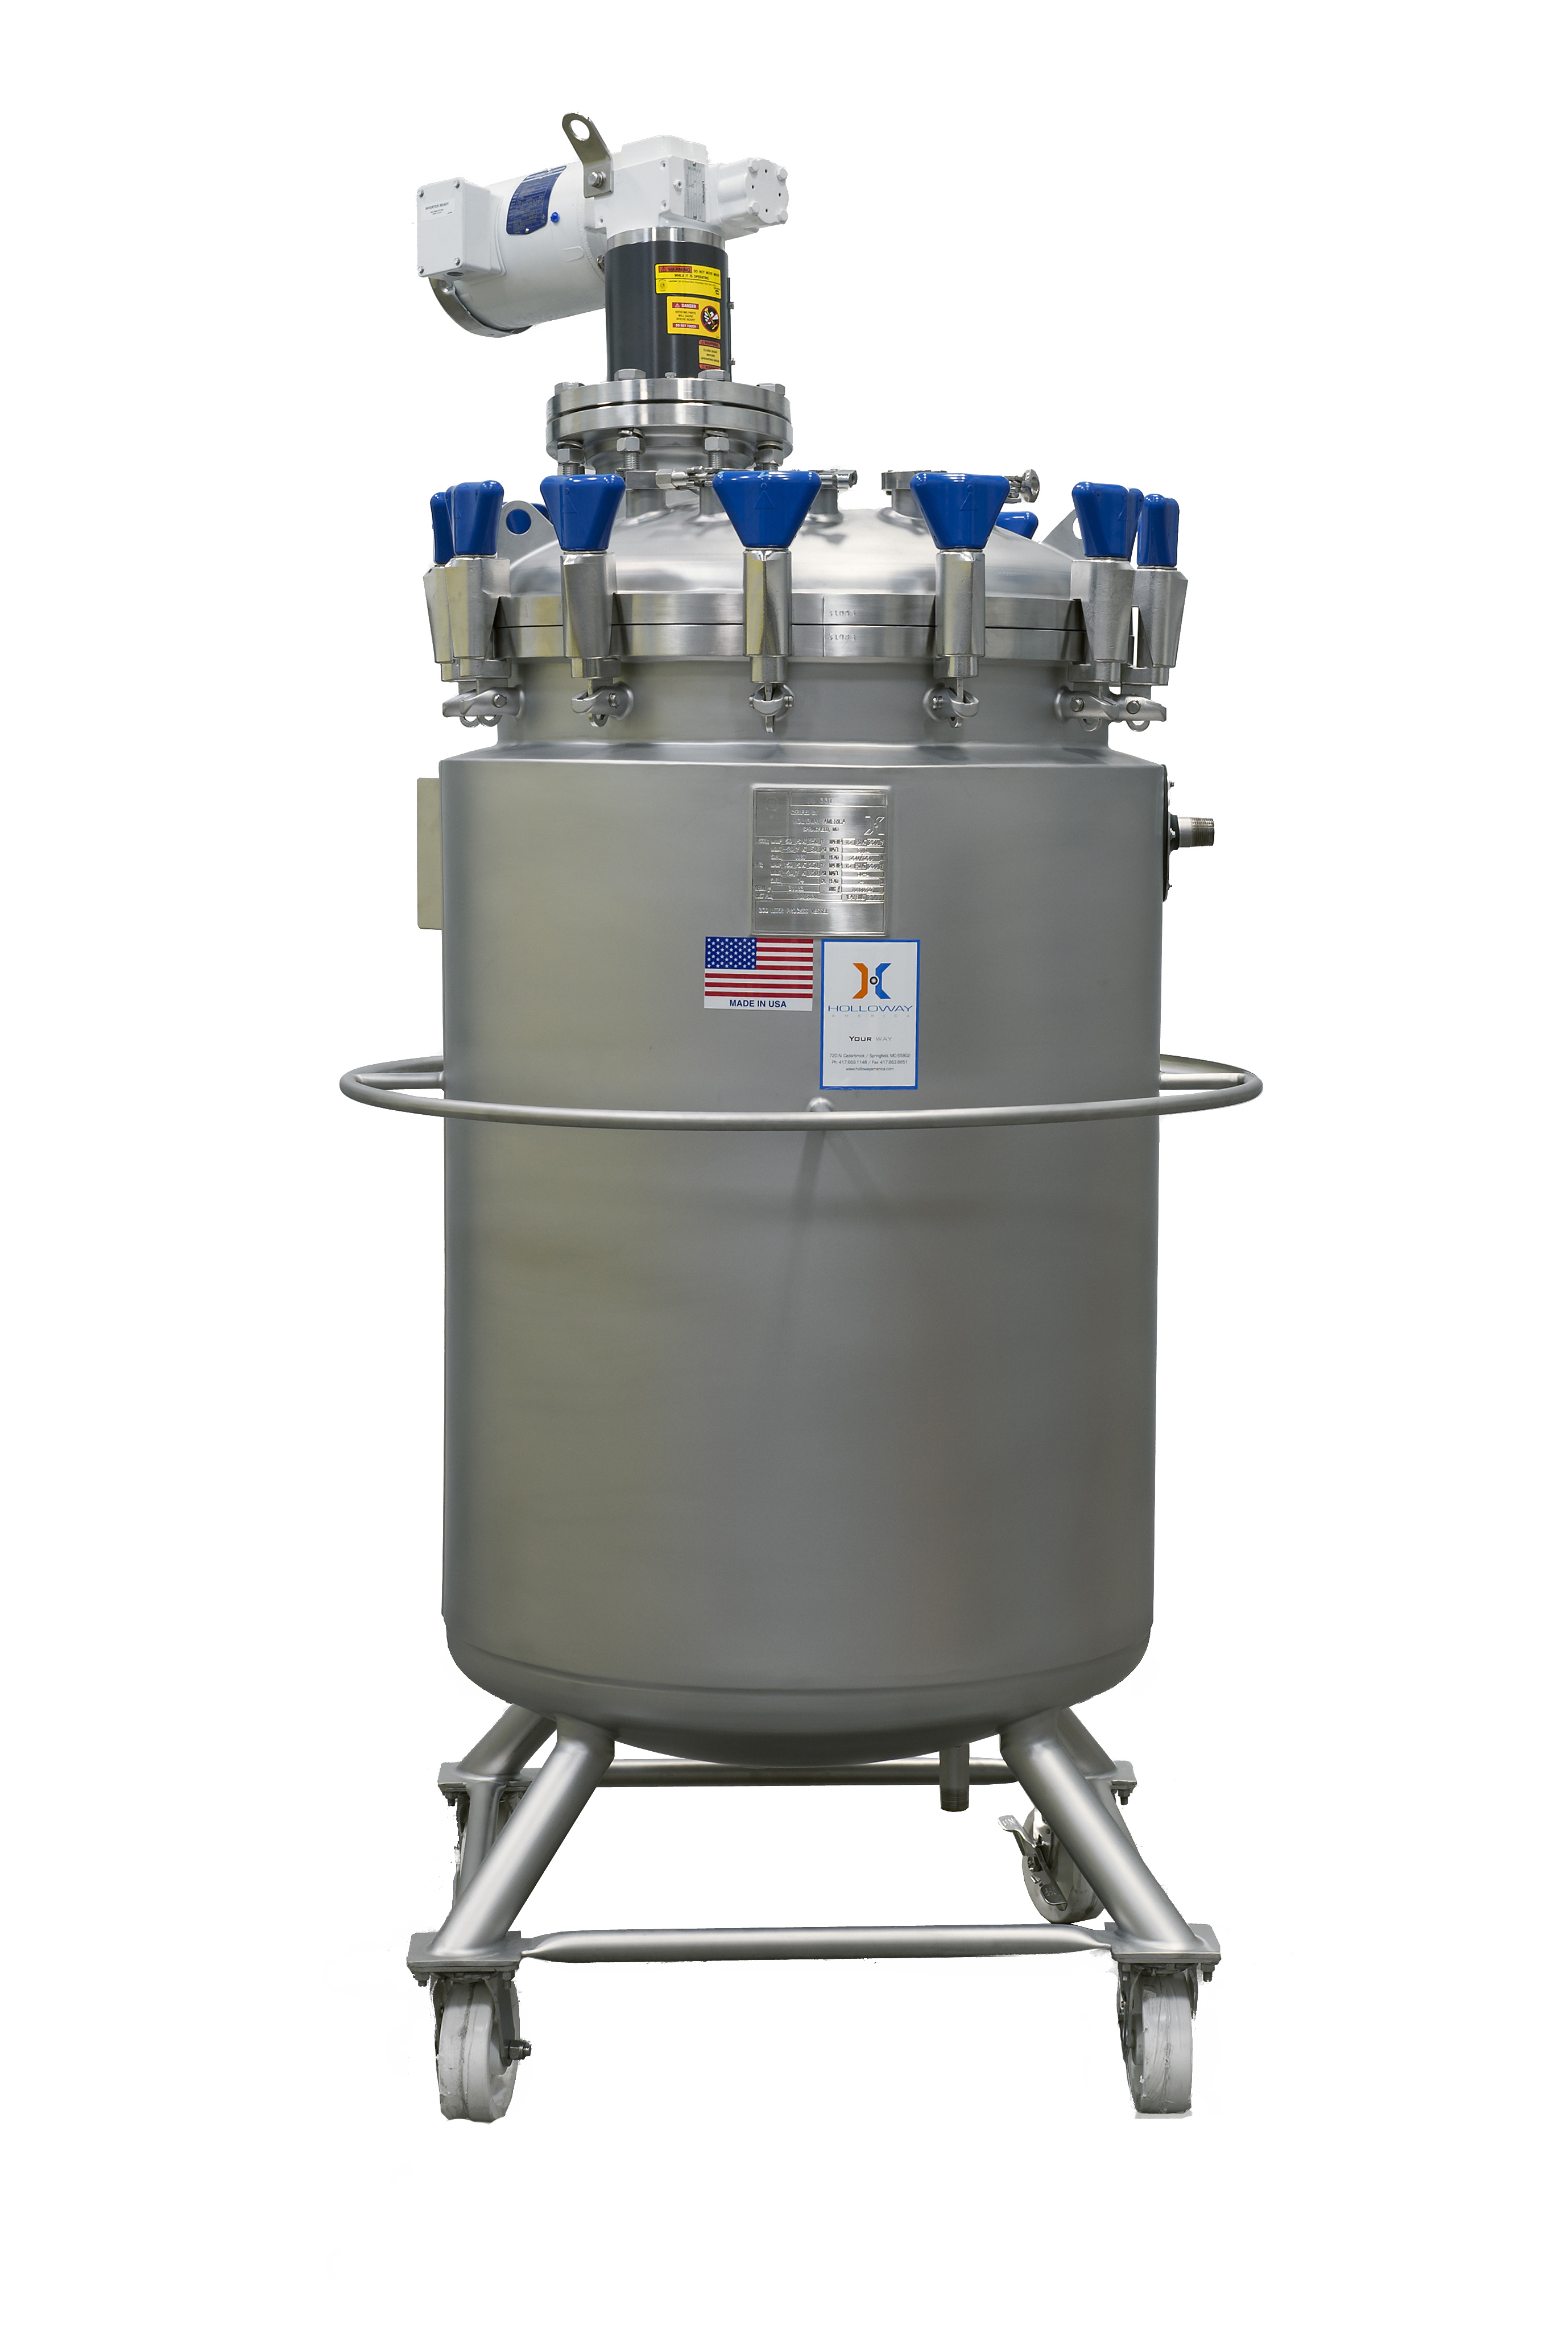 This ASME mixer tank meets the stainless steel ASME code for pressure vessels.